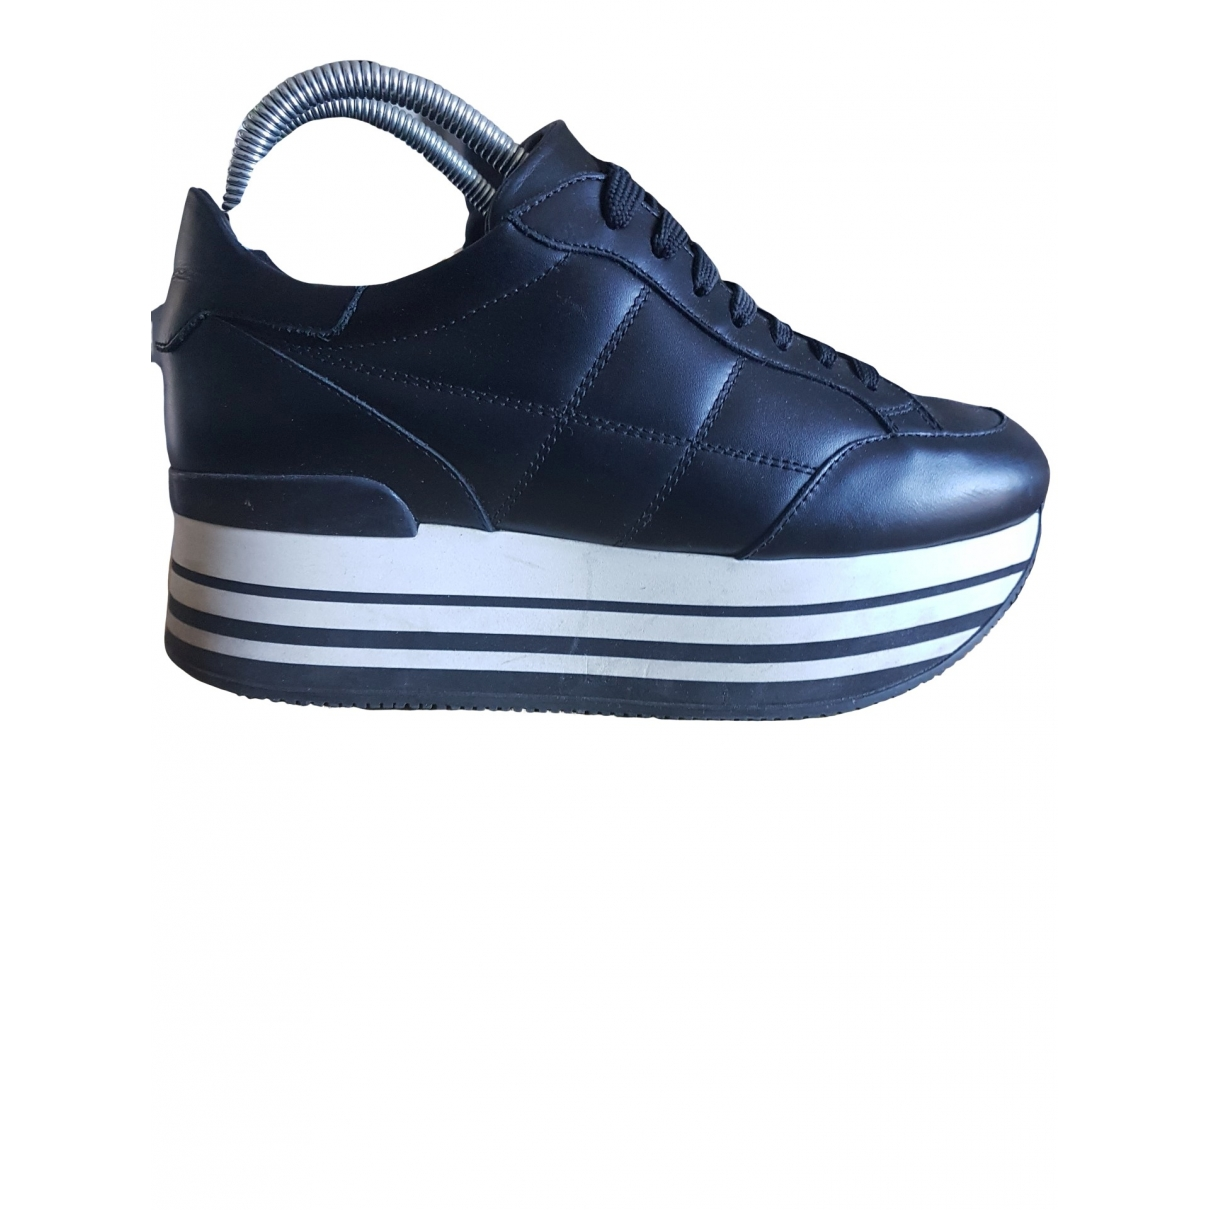 Hogan \N Black Leather Trainers for Women 38 EU